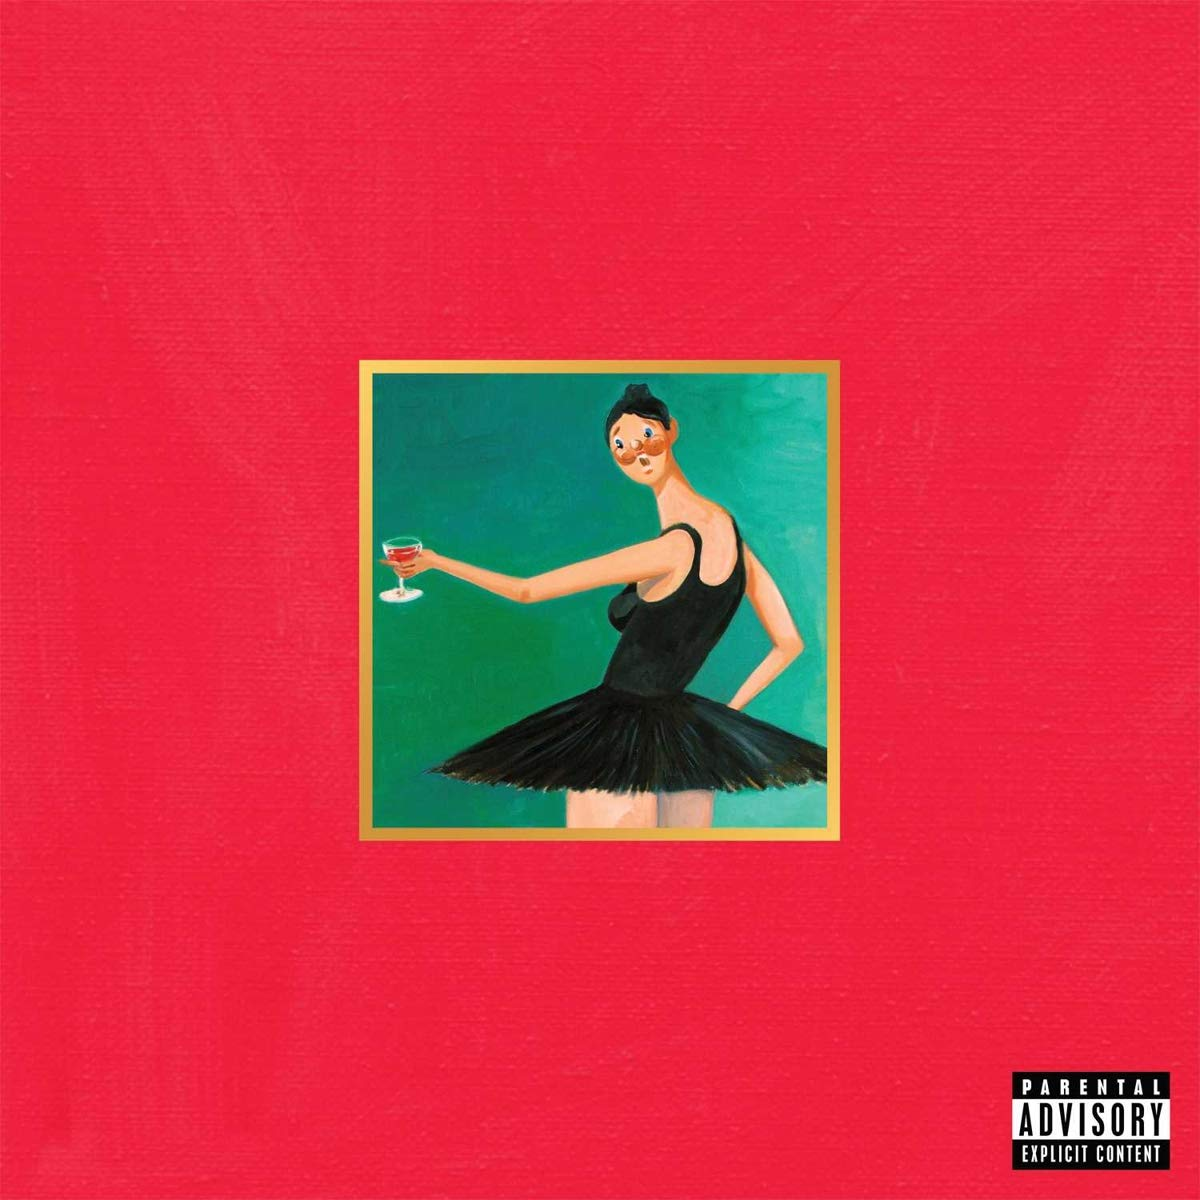 Kanye West - My Beautiful Dark Twisted Fantasy Limited Edition 3LP Vinyl Record Album